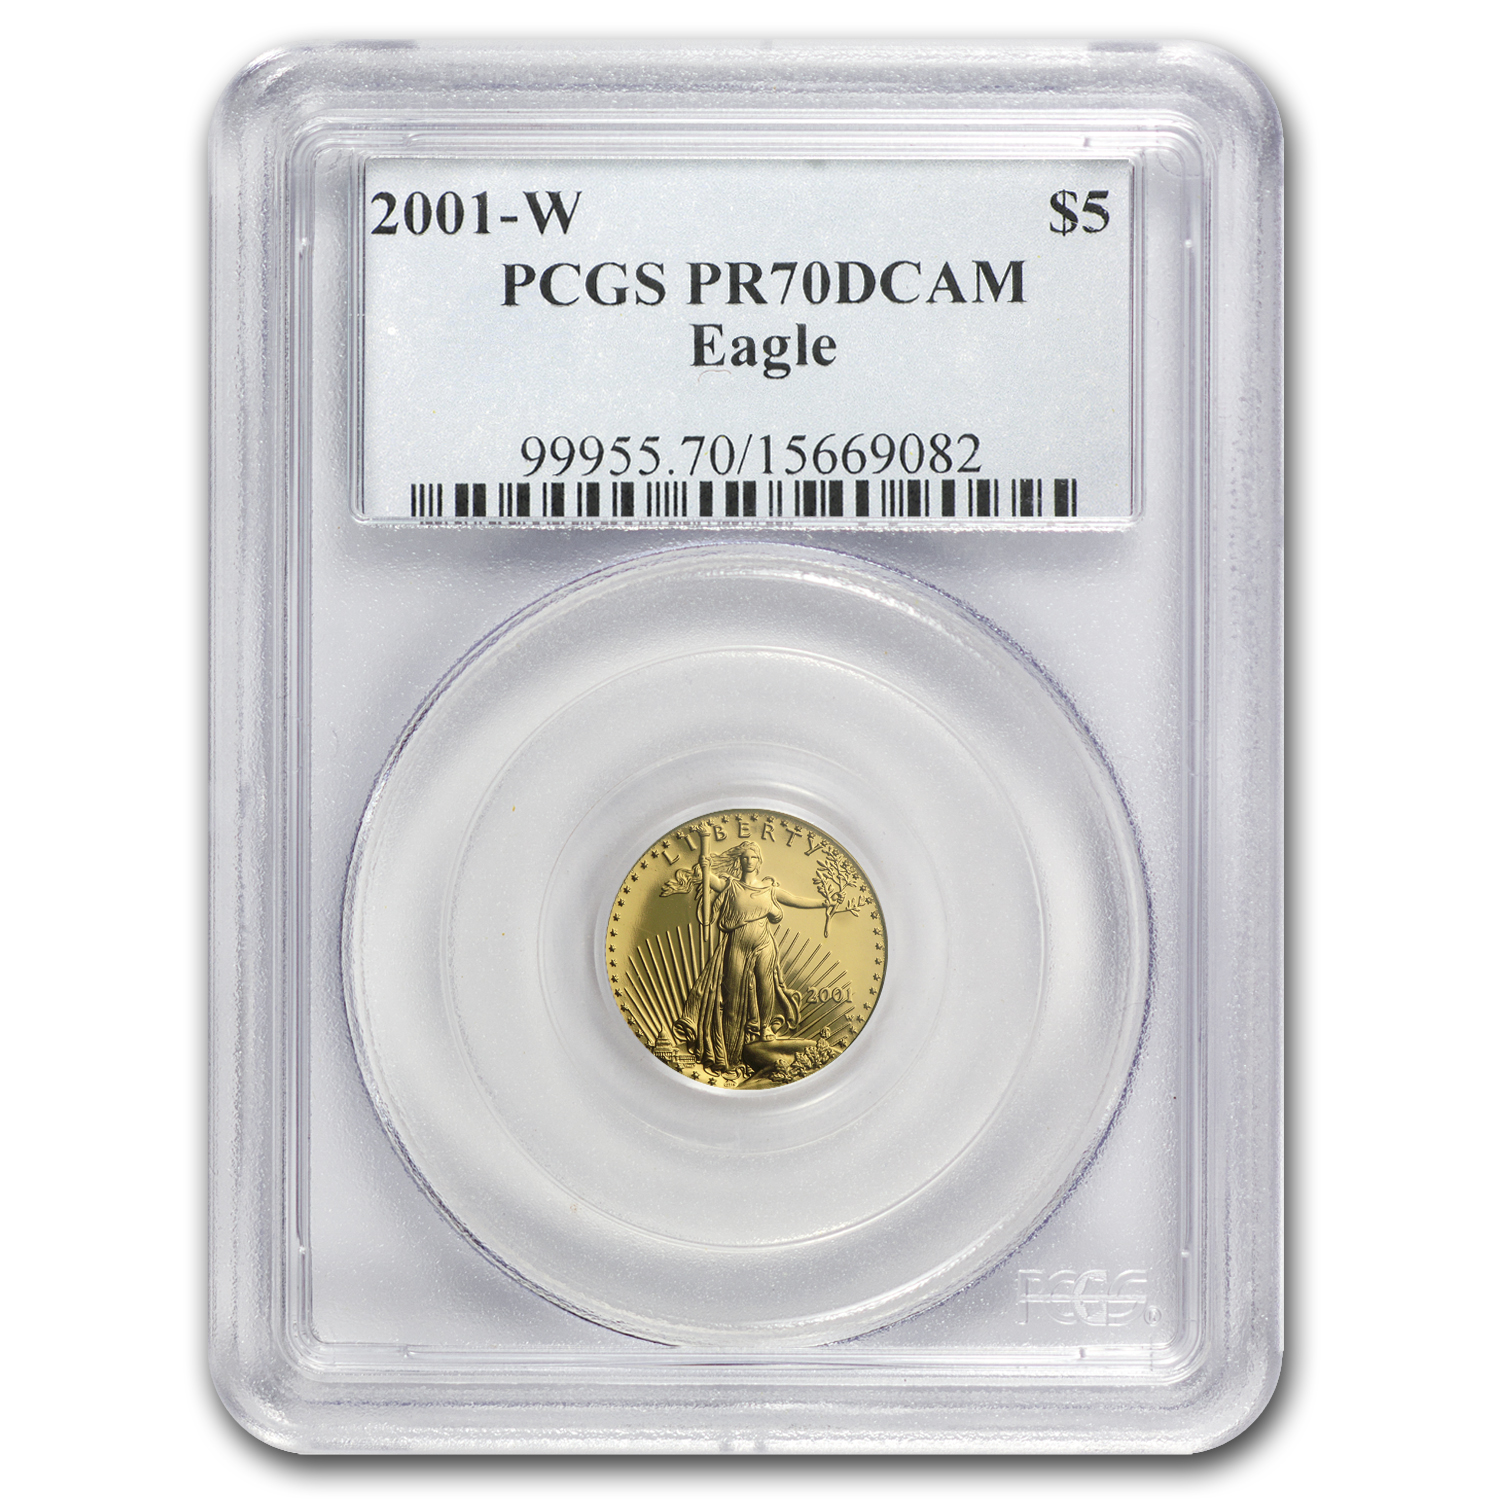 2001-W 1/10 oz Prf Gold American Eagle PR-70 PCGS (Registry Set)